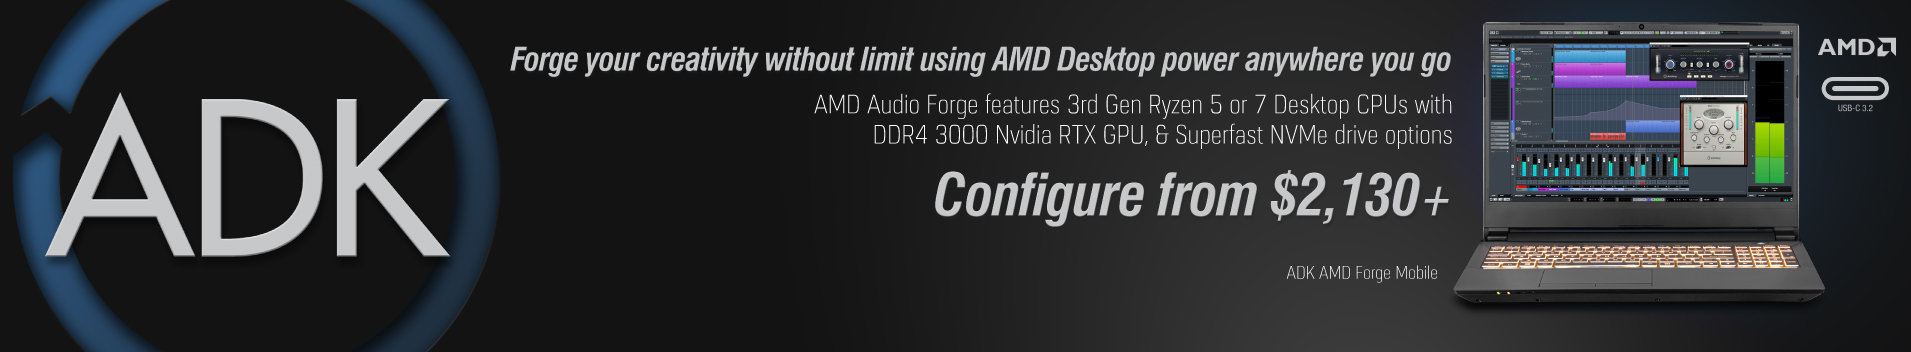 ADK AMD Forge Mobile. 3rd Generation AMD Ryzen and the AMD B450 chipset. Contact Us today to configure your system!